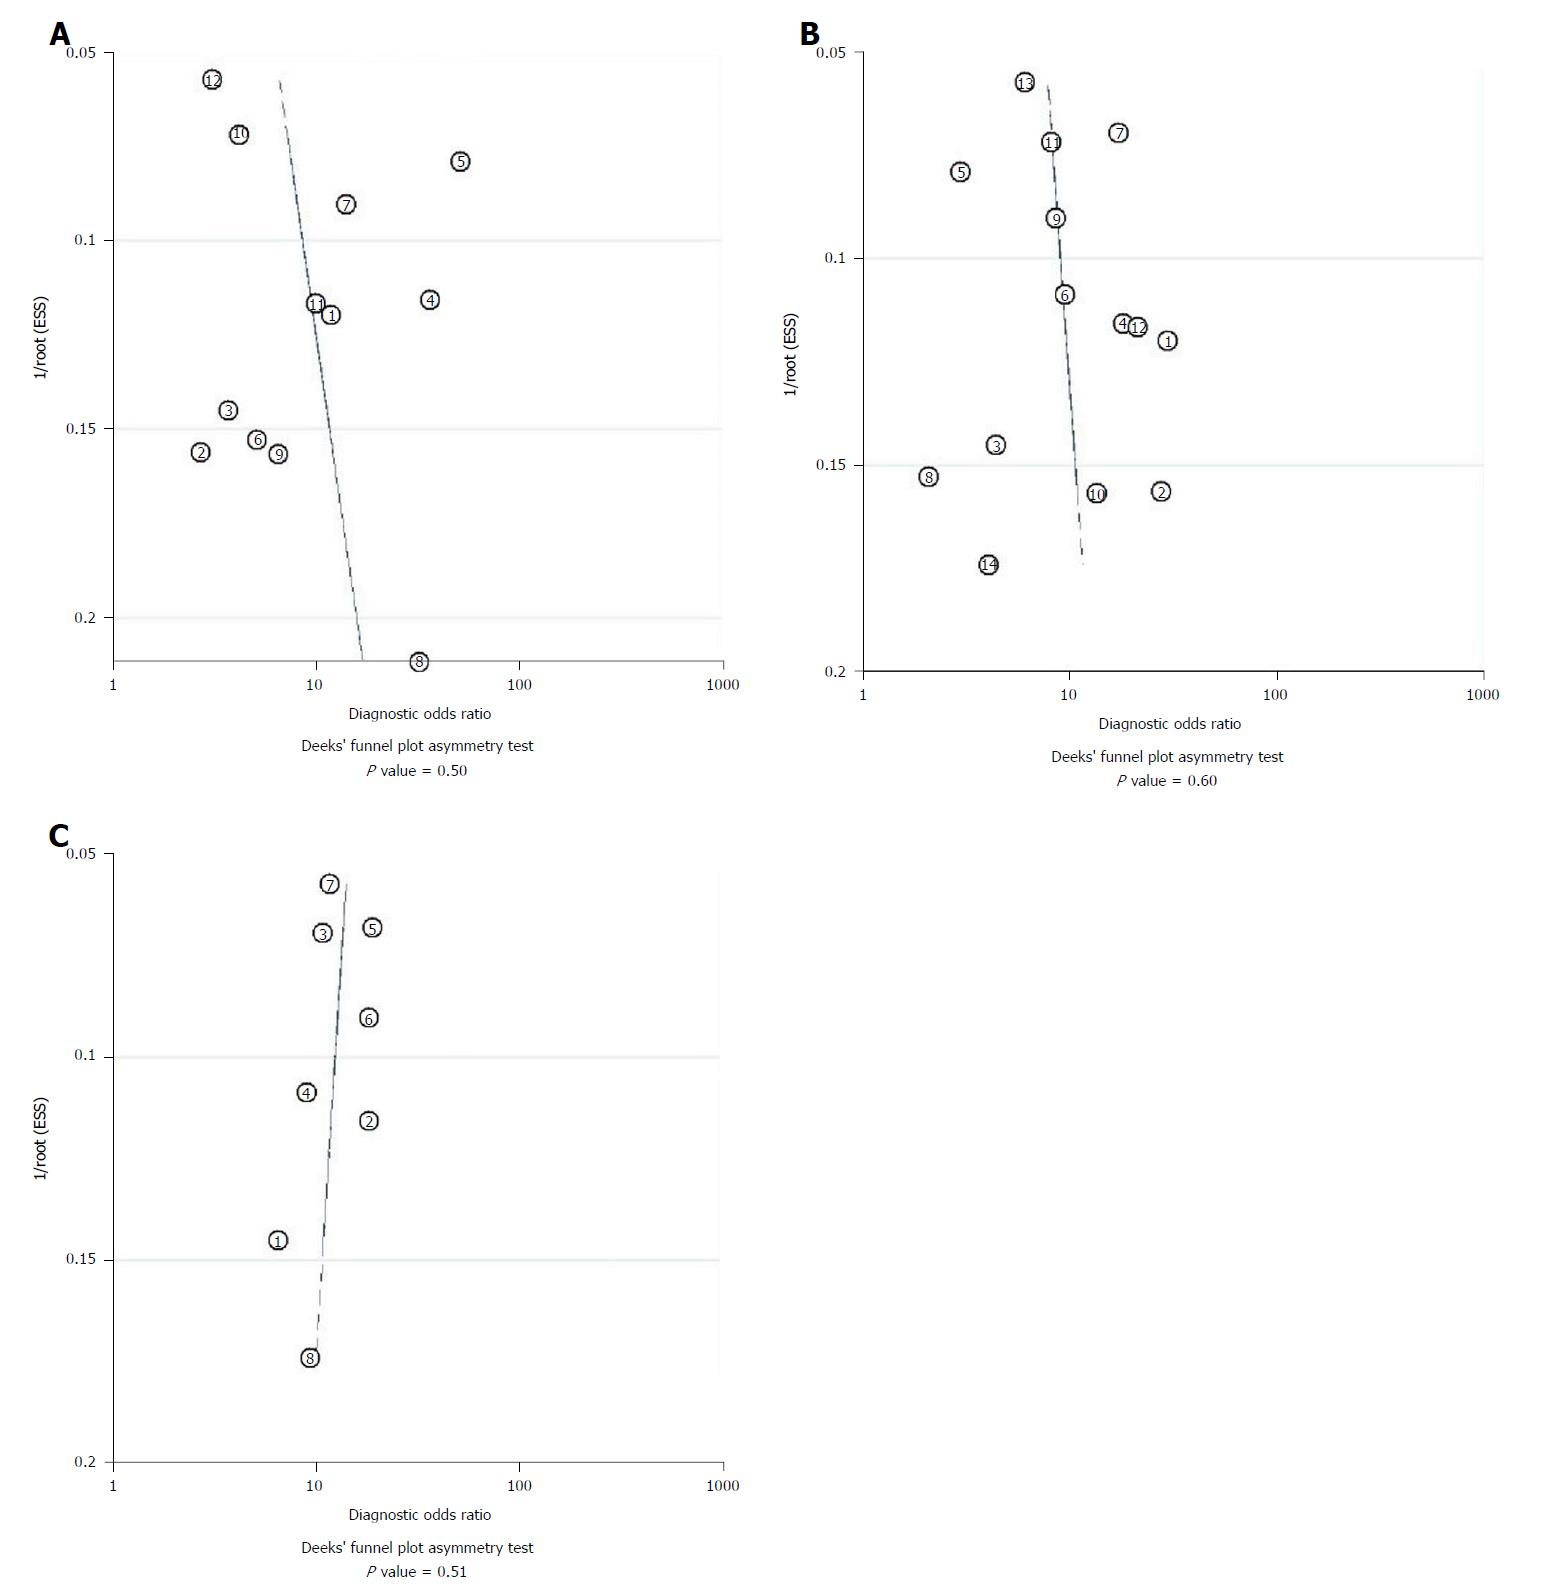 Scoring Systems For Prediction Of Mortality In Decompensated Liver Cirrhosis A Metaysis Of